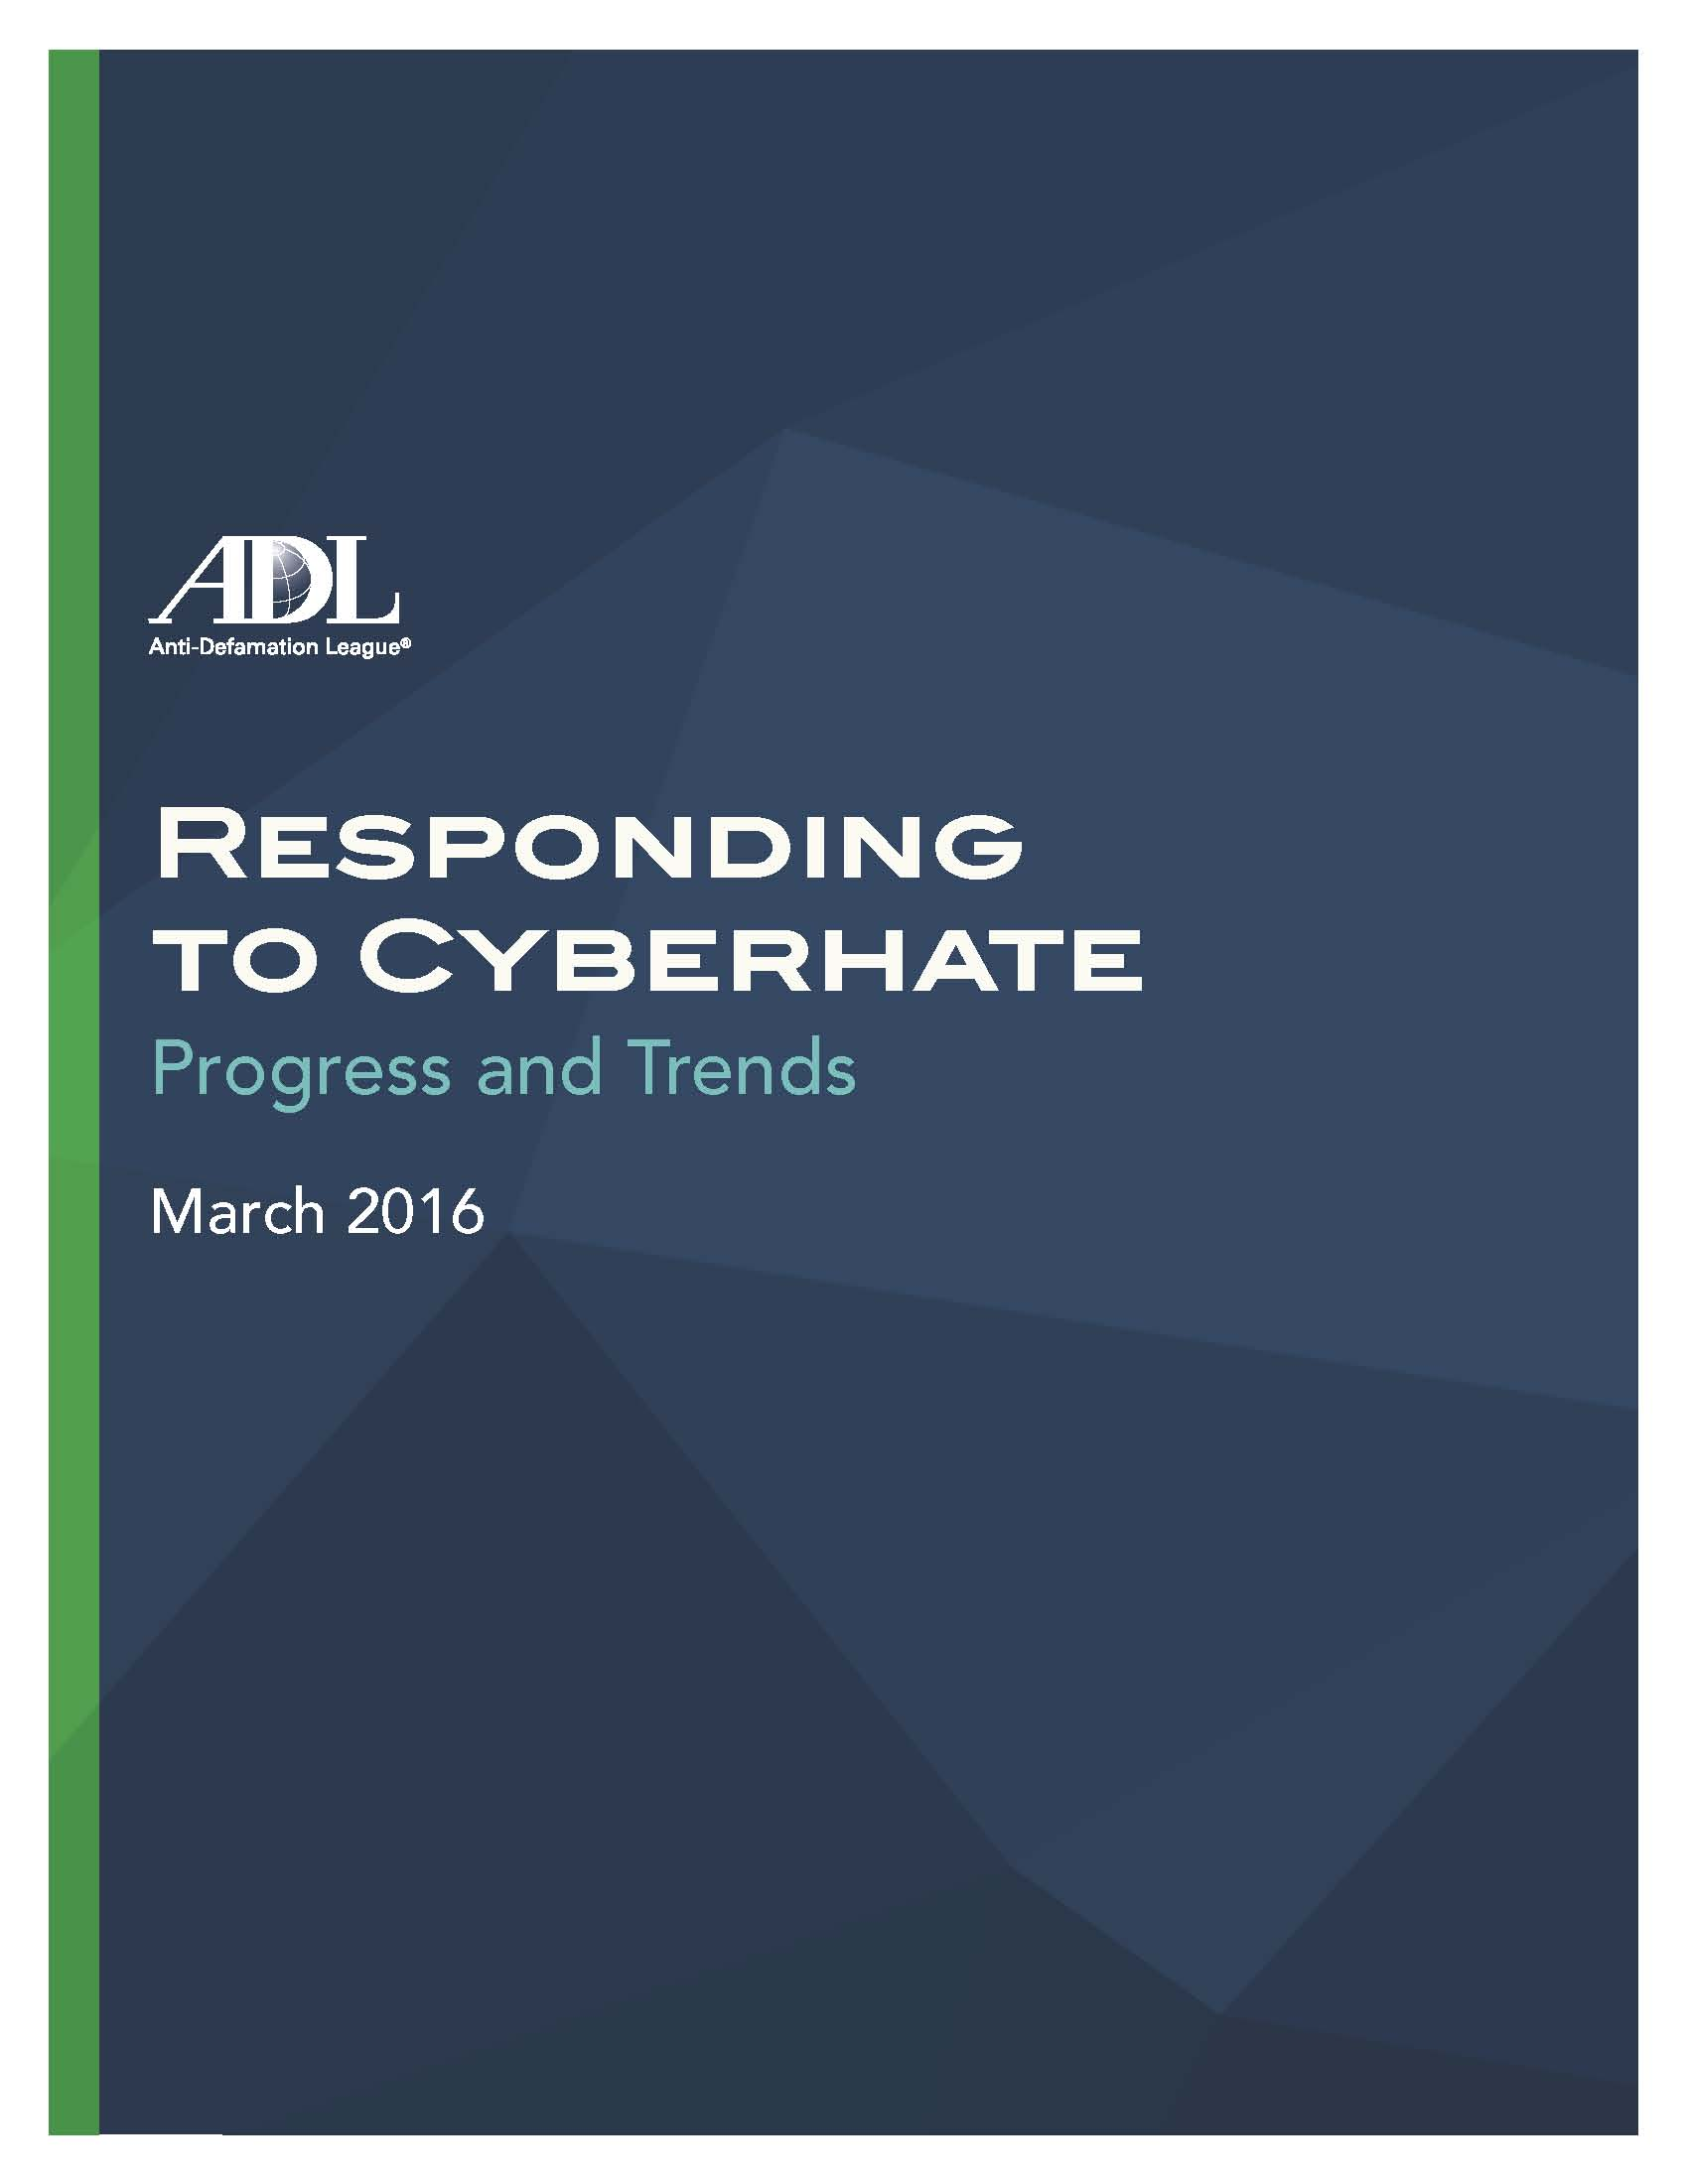 Responding to Cyberhate: Progress and Trends - March 2016